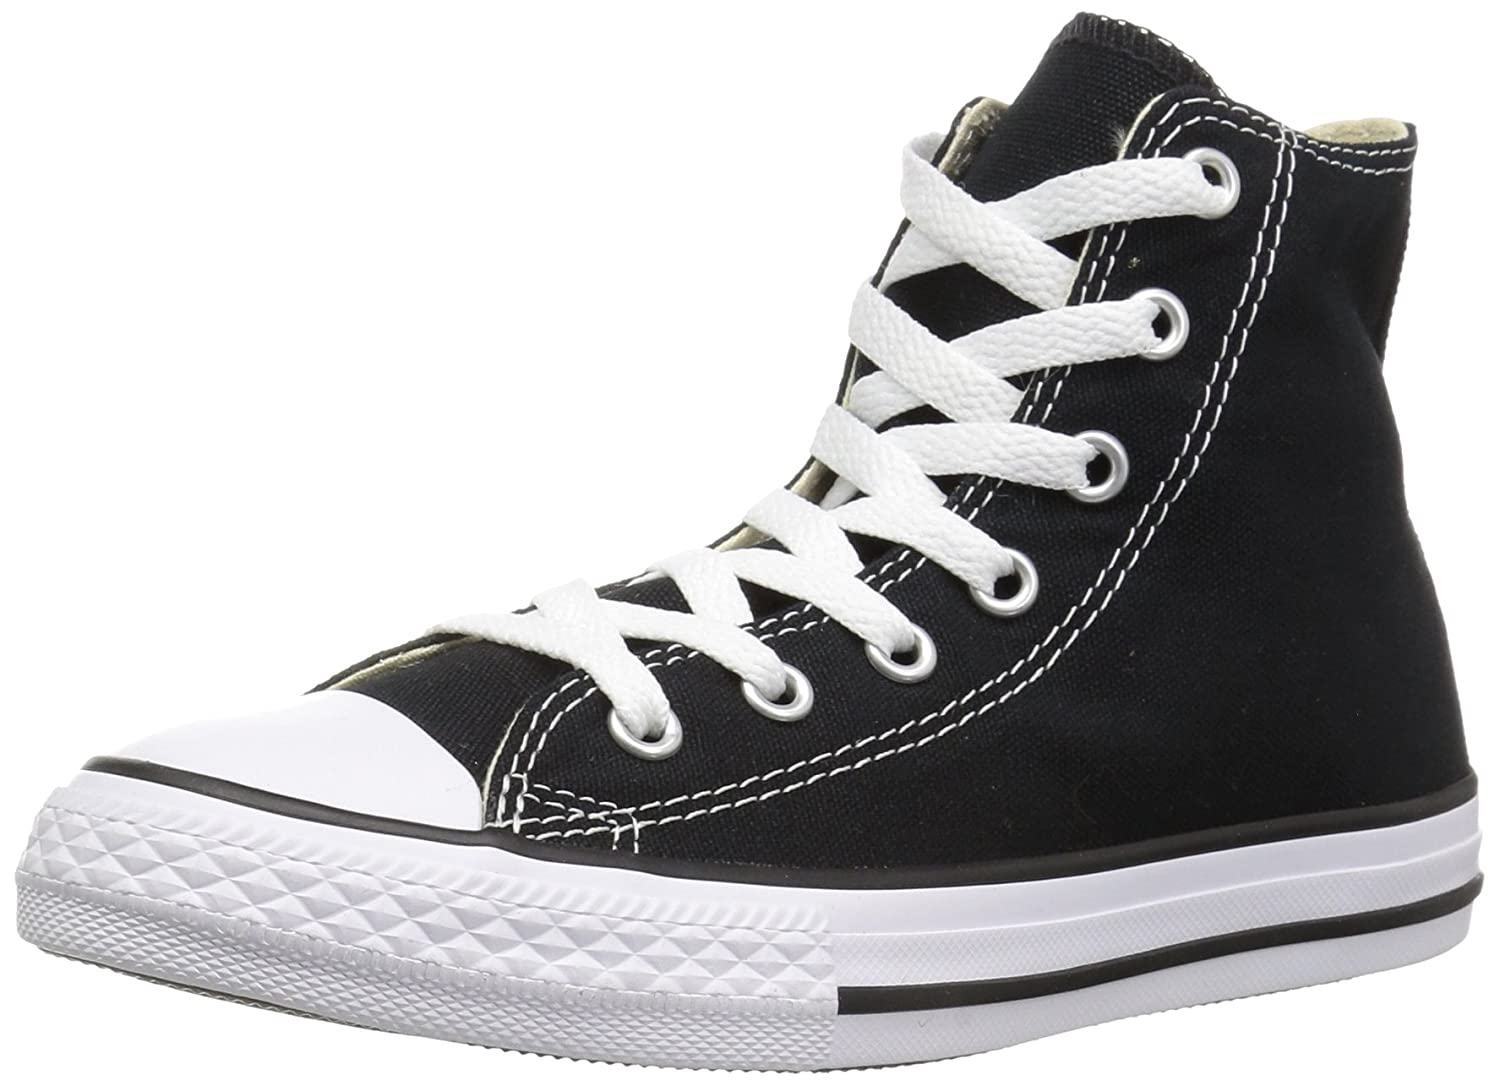 Converse Chuck Taylor All Star High Top B005LVLV10 4 D(M) US|Black